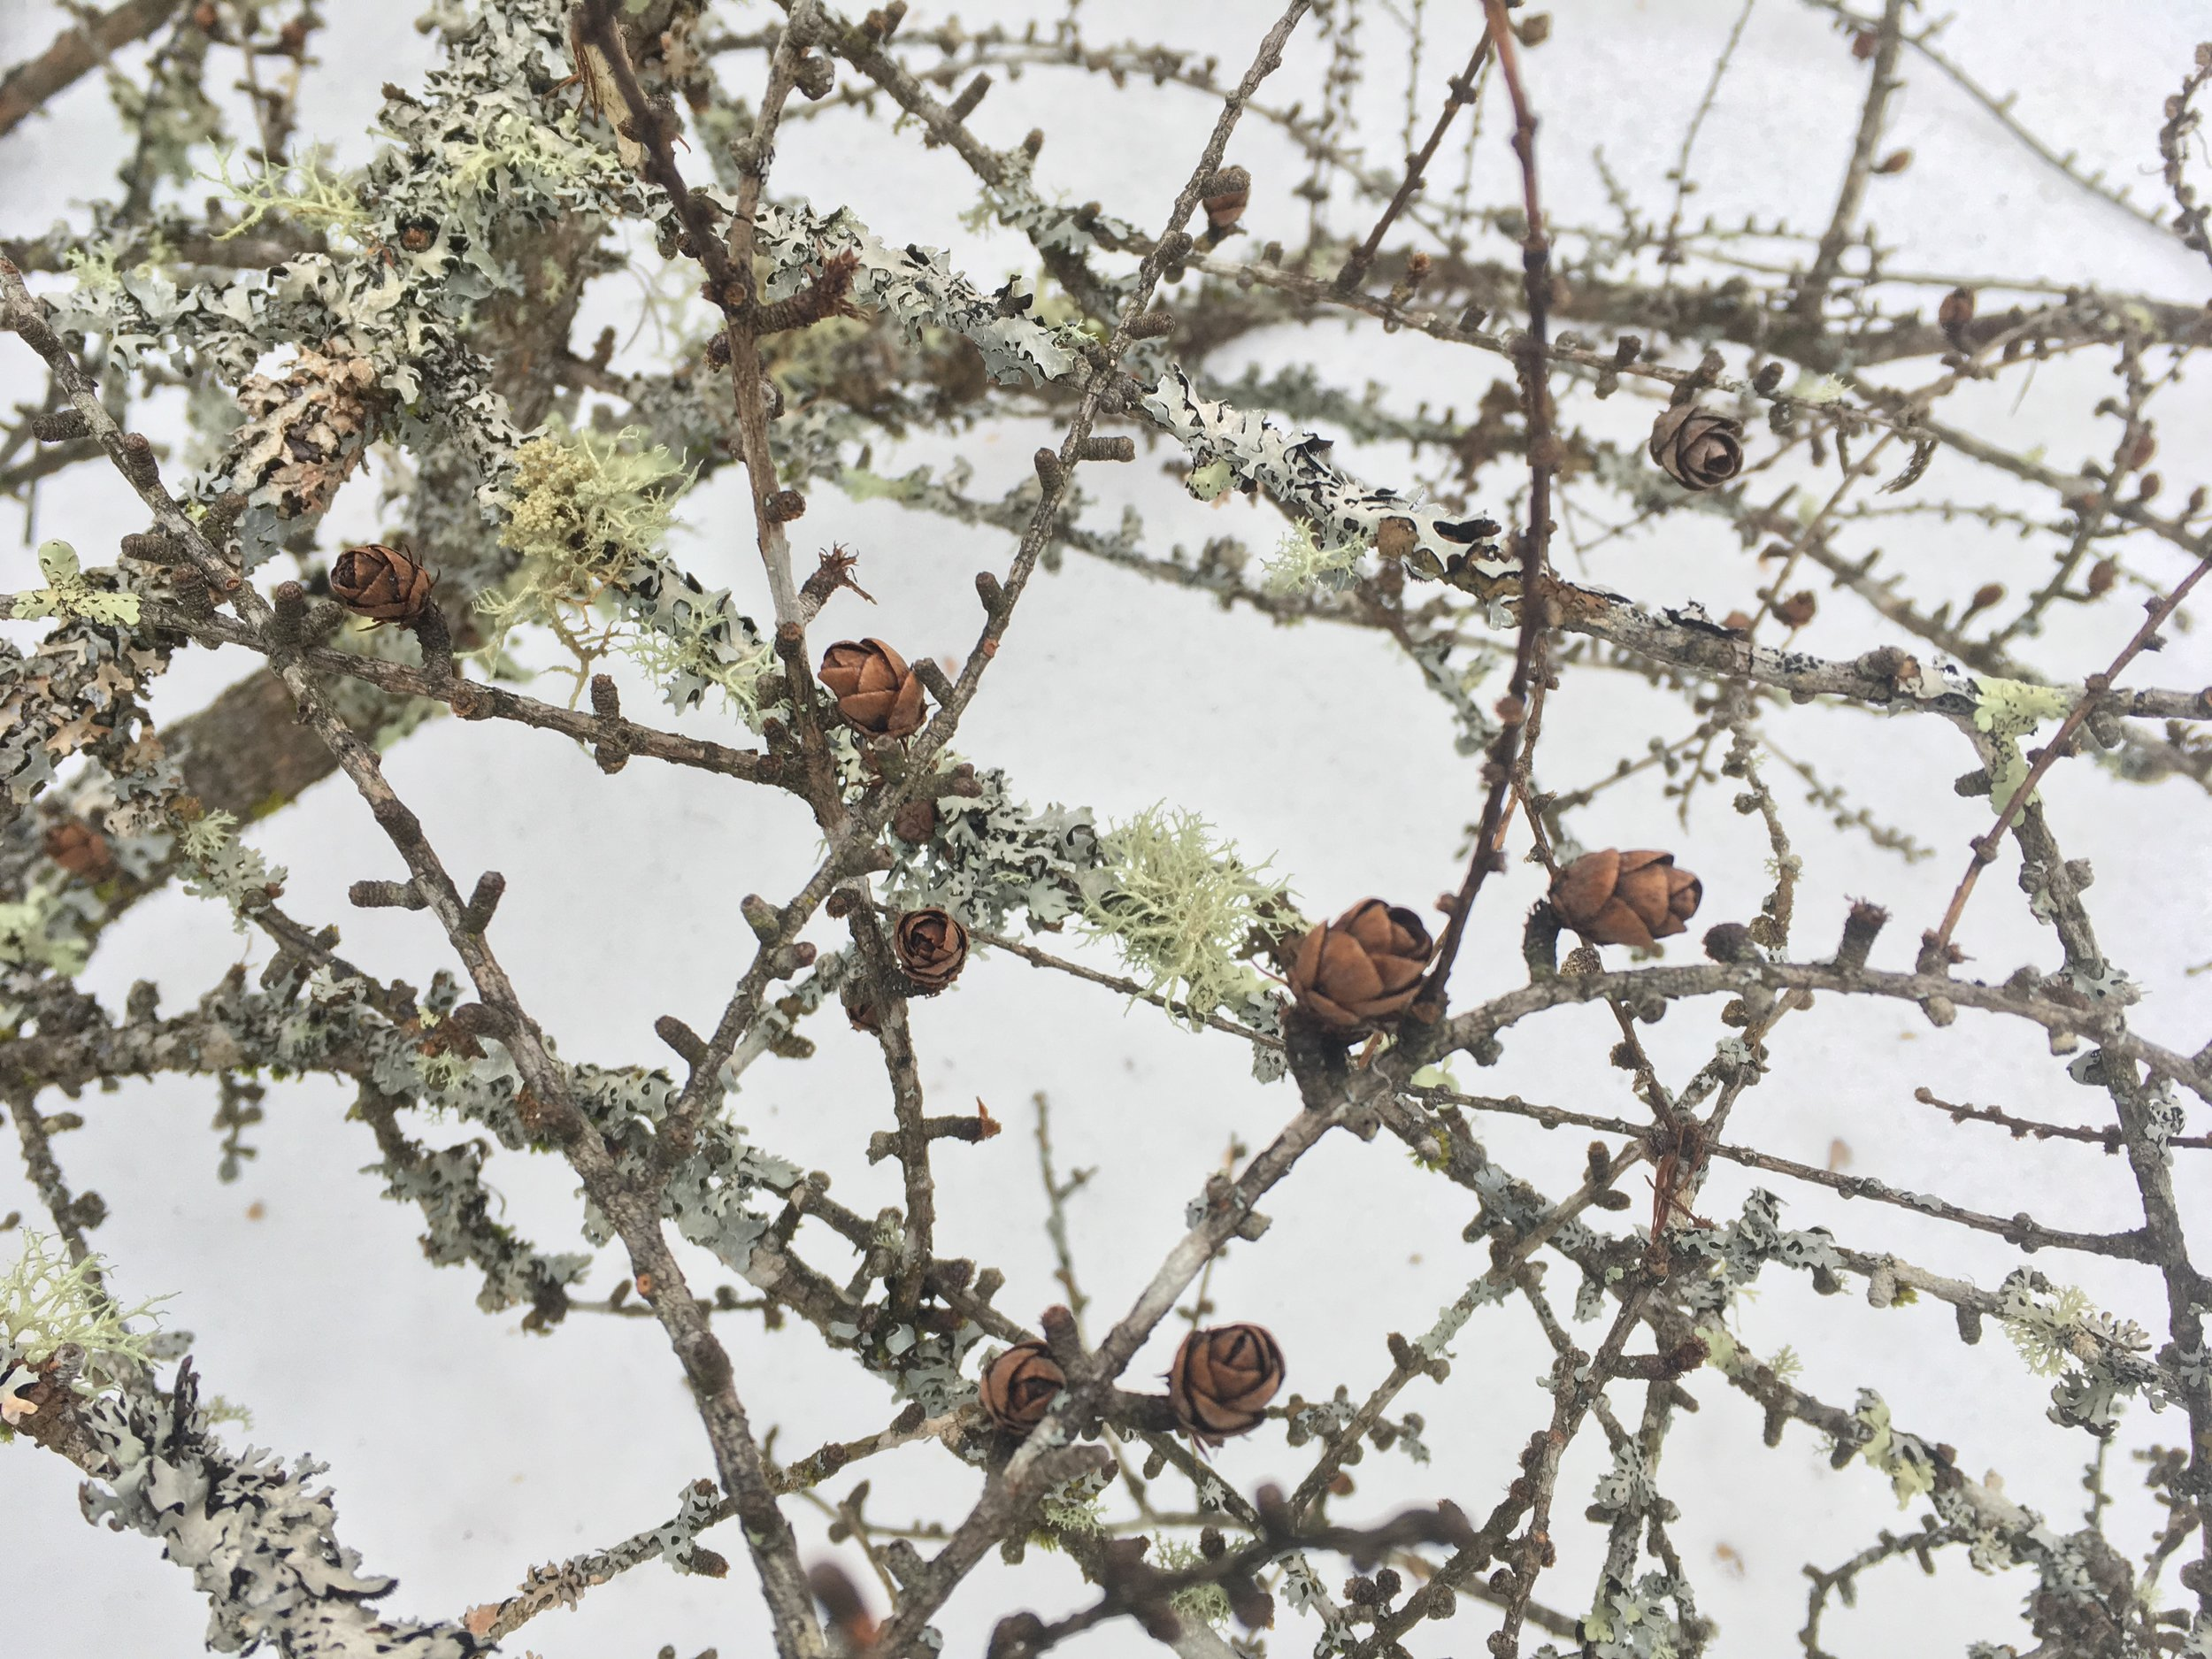 In winter, there are still beautiful local materials to use in floral designs